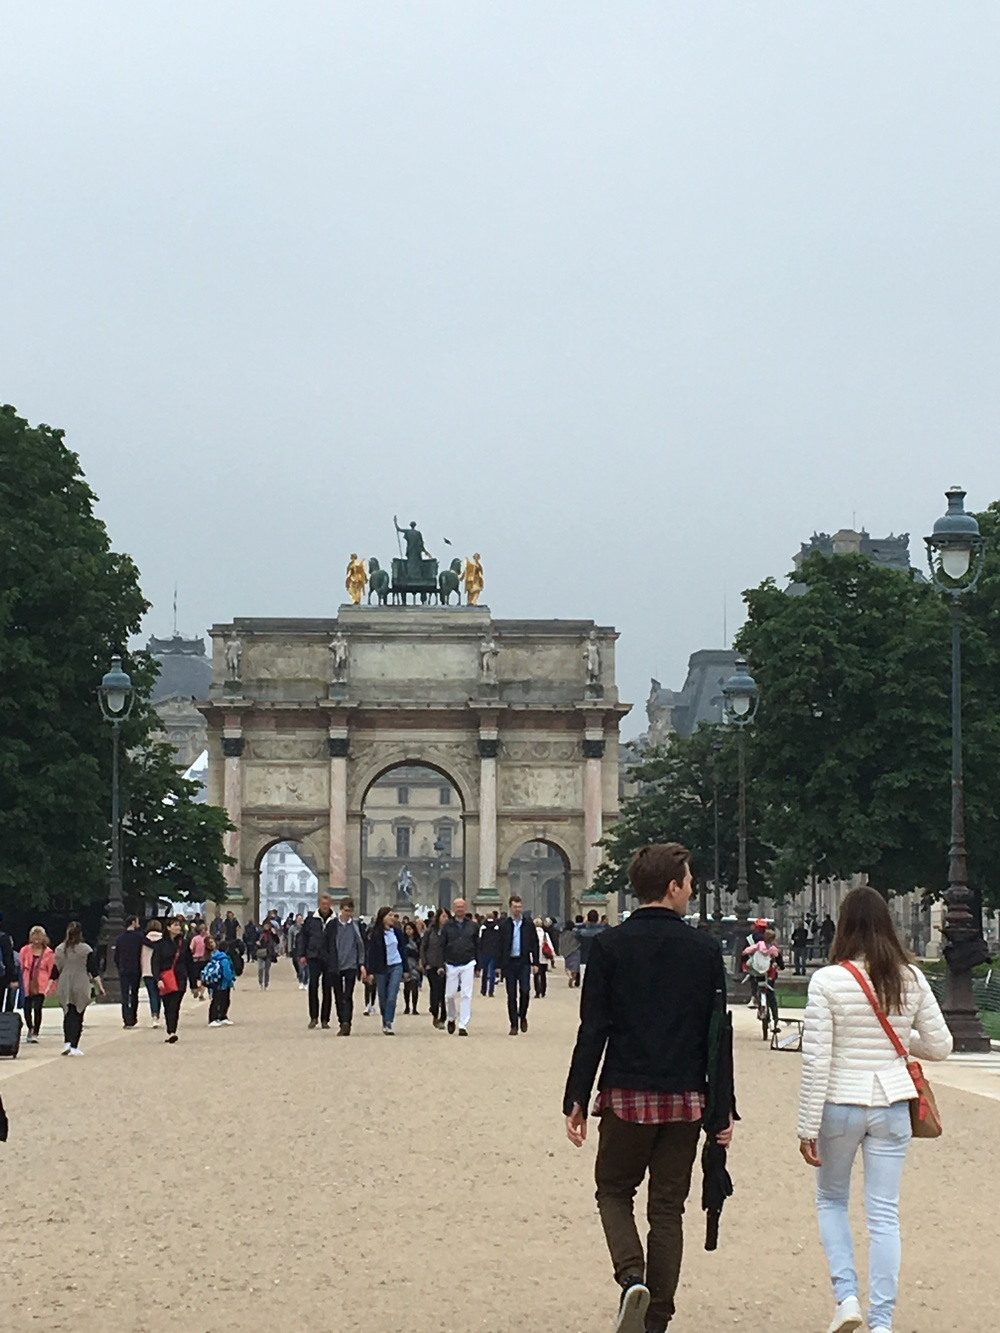 A Triumphal Arch at Palais Royal